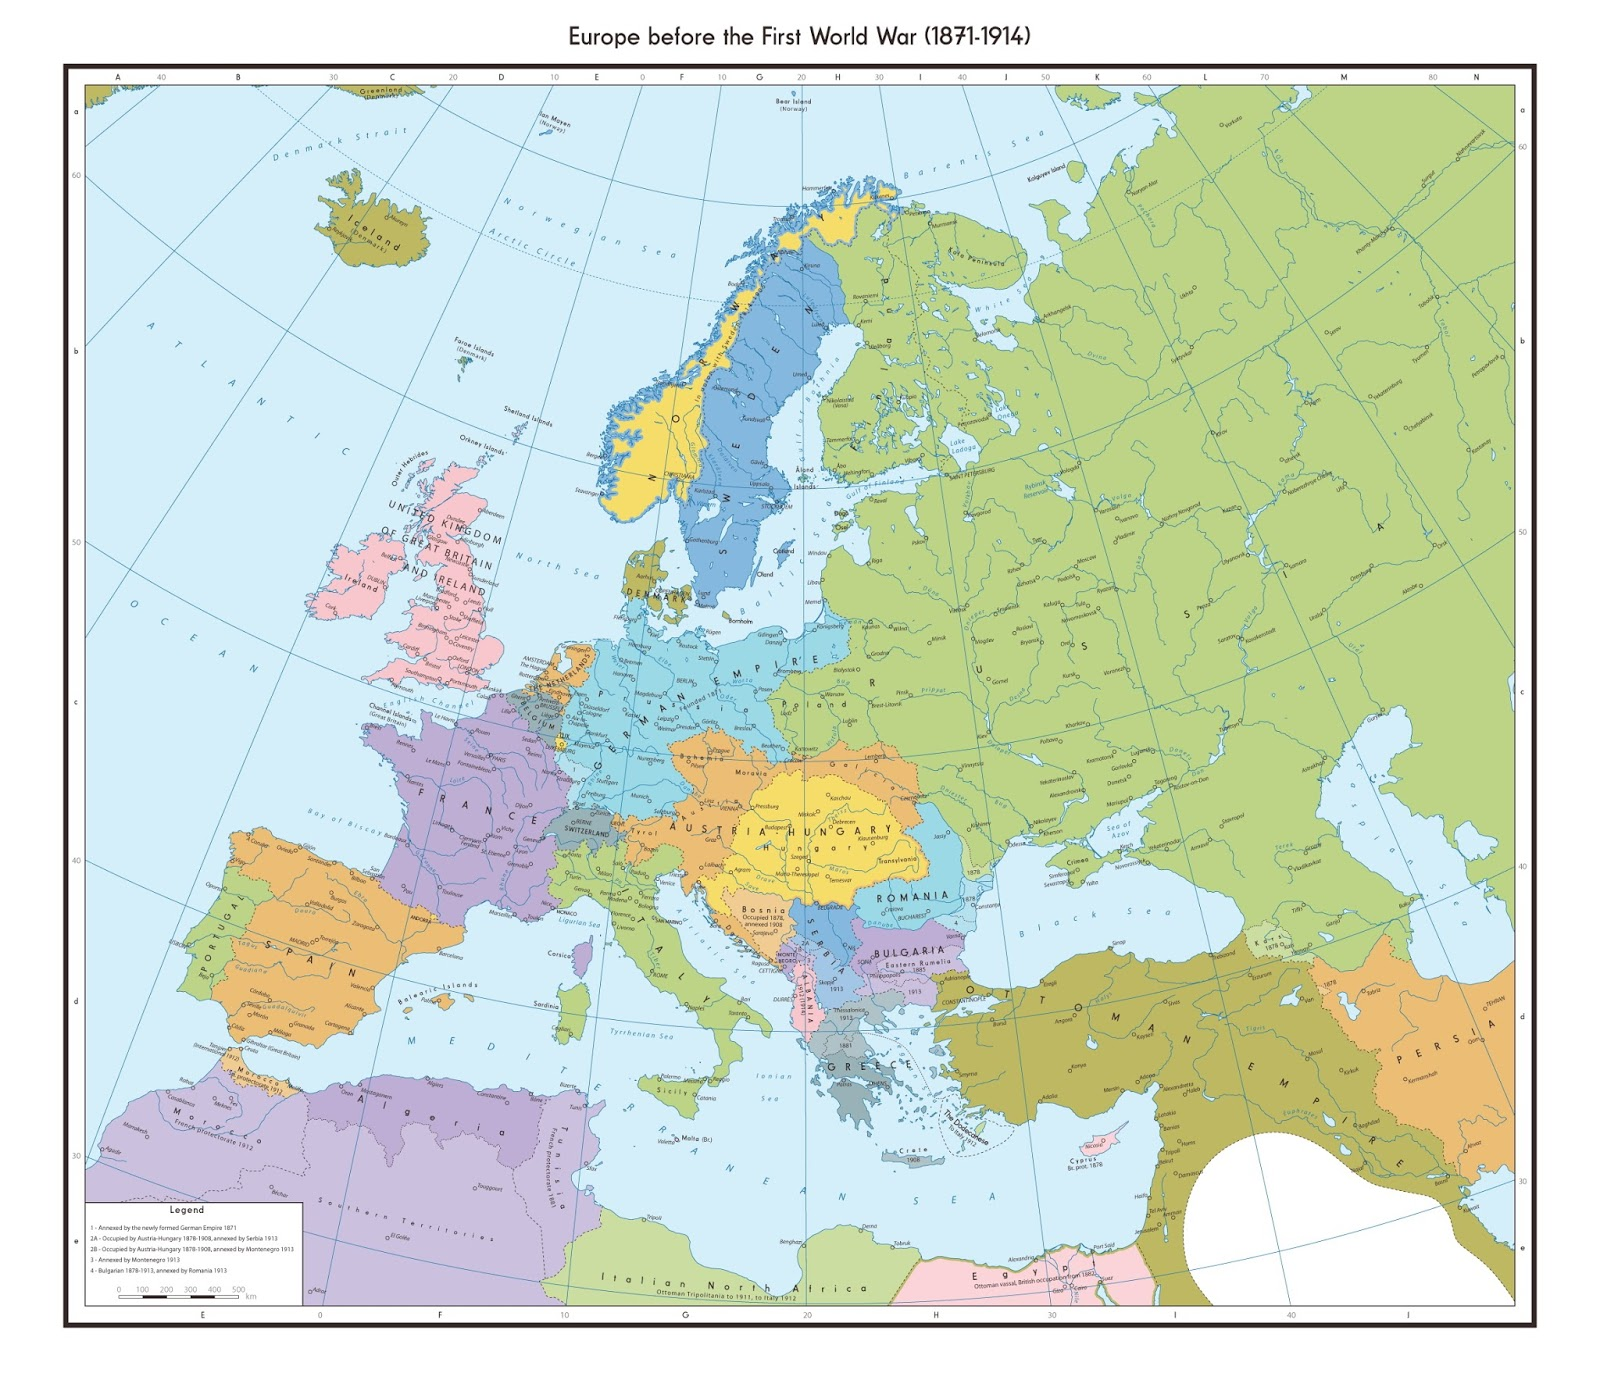 Europe before the First World War (1871-1914)